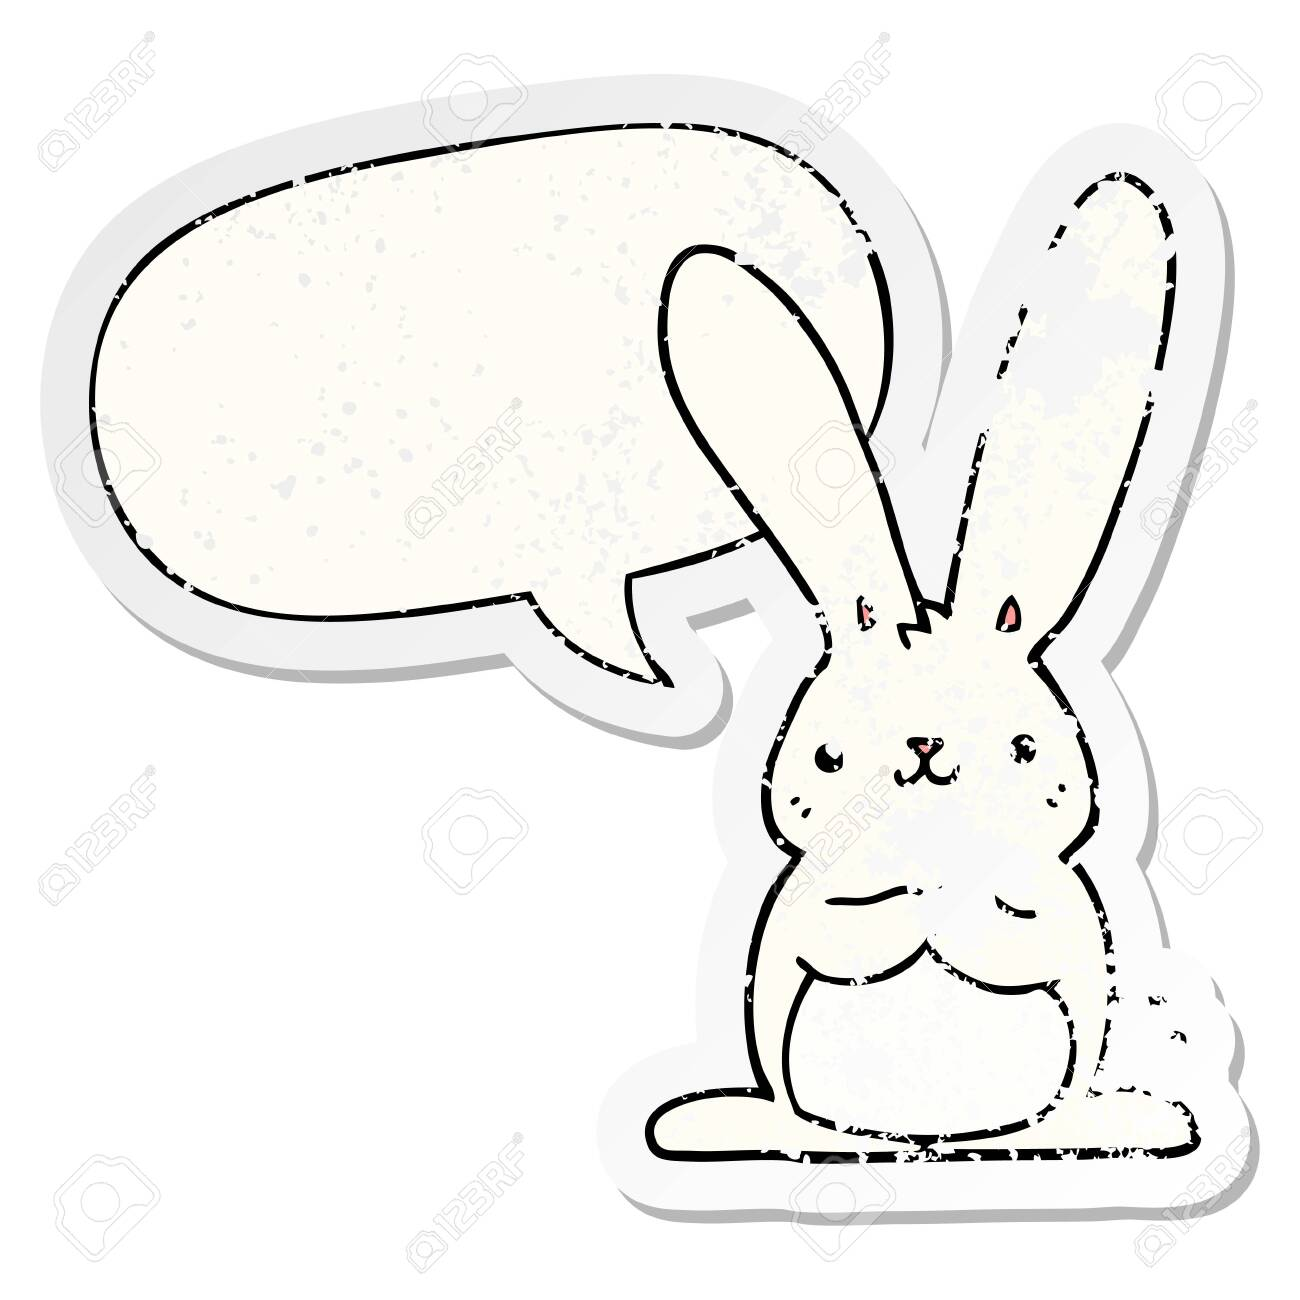 cartoon rabbit with speech bubble distressed distressed old sticker - 130433516